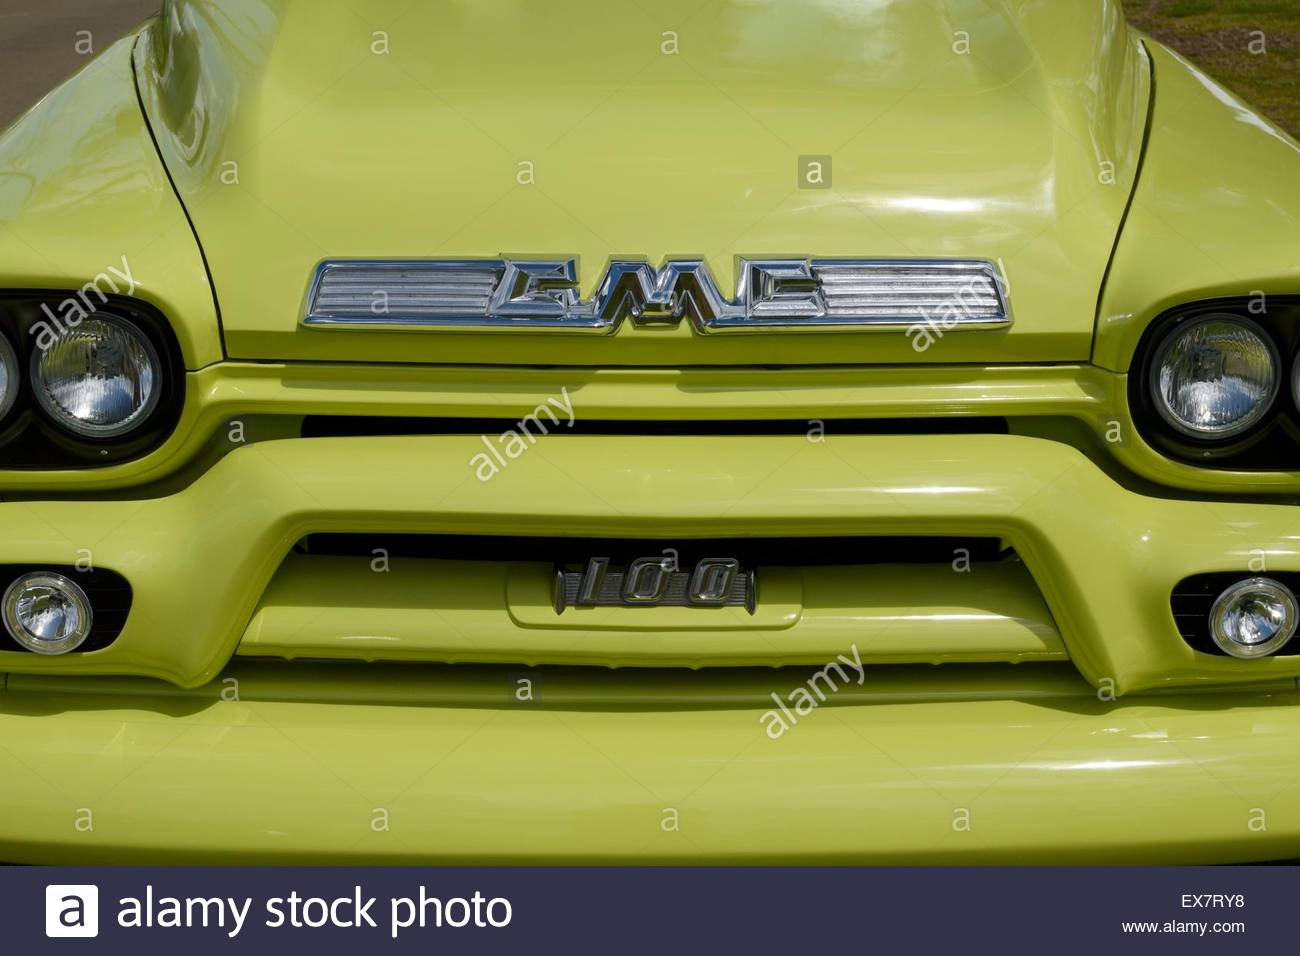 Close-up of a GMC (General Motors Company) badge, headlights and hood of a 1950's 100 pick-up truck - Stock Image